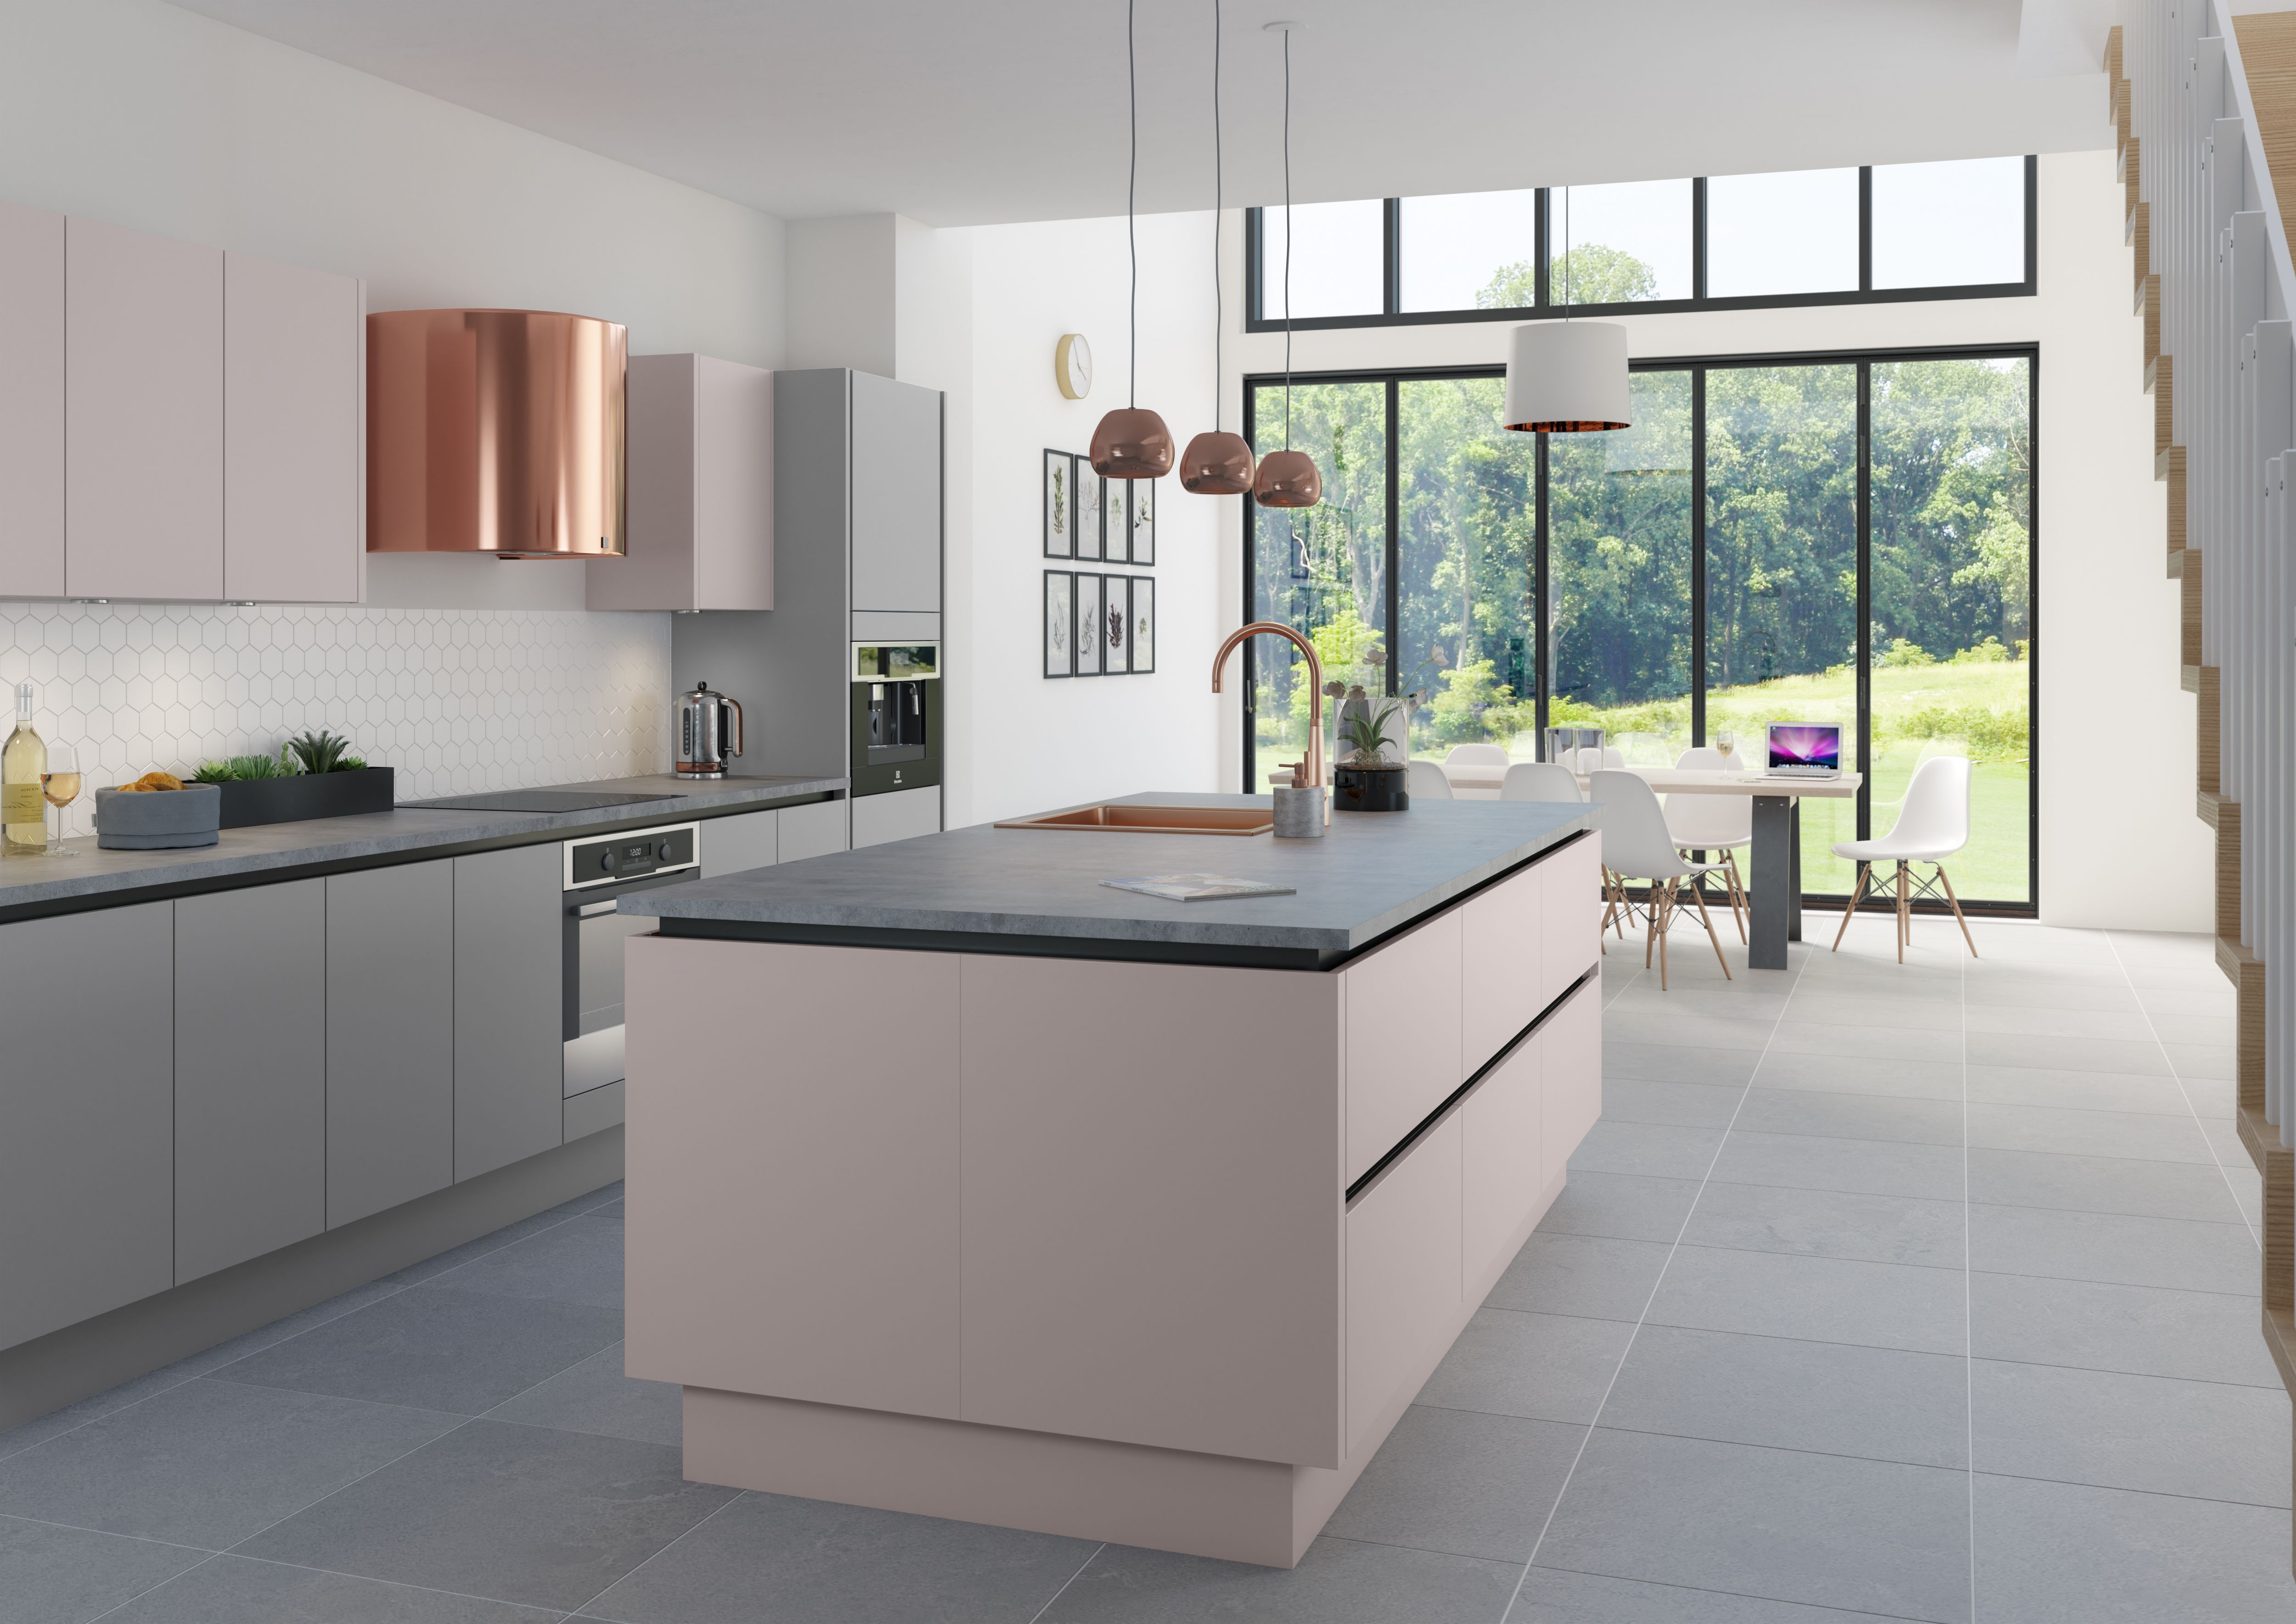 Delicate Shades And Brass Accents Inject A Sense Of Romance And Warmth Into Your Kitchen This M In 2020 Contemporary Kitchen Interior Kitchen Trends Kitchen Remodel